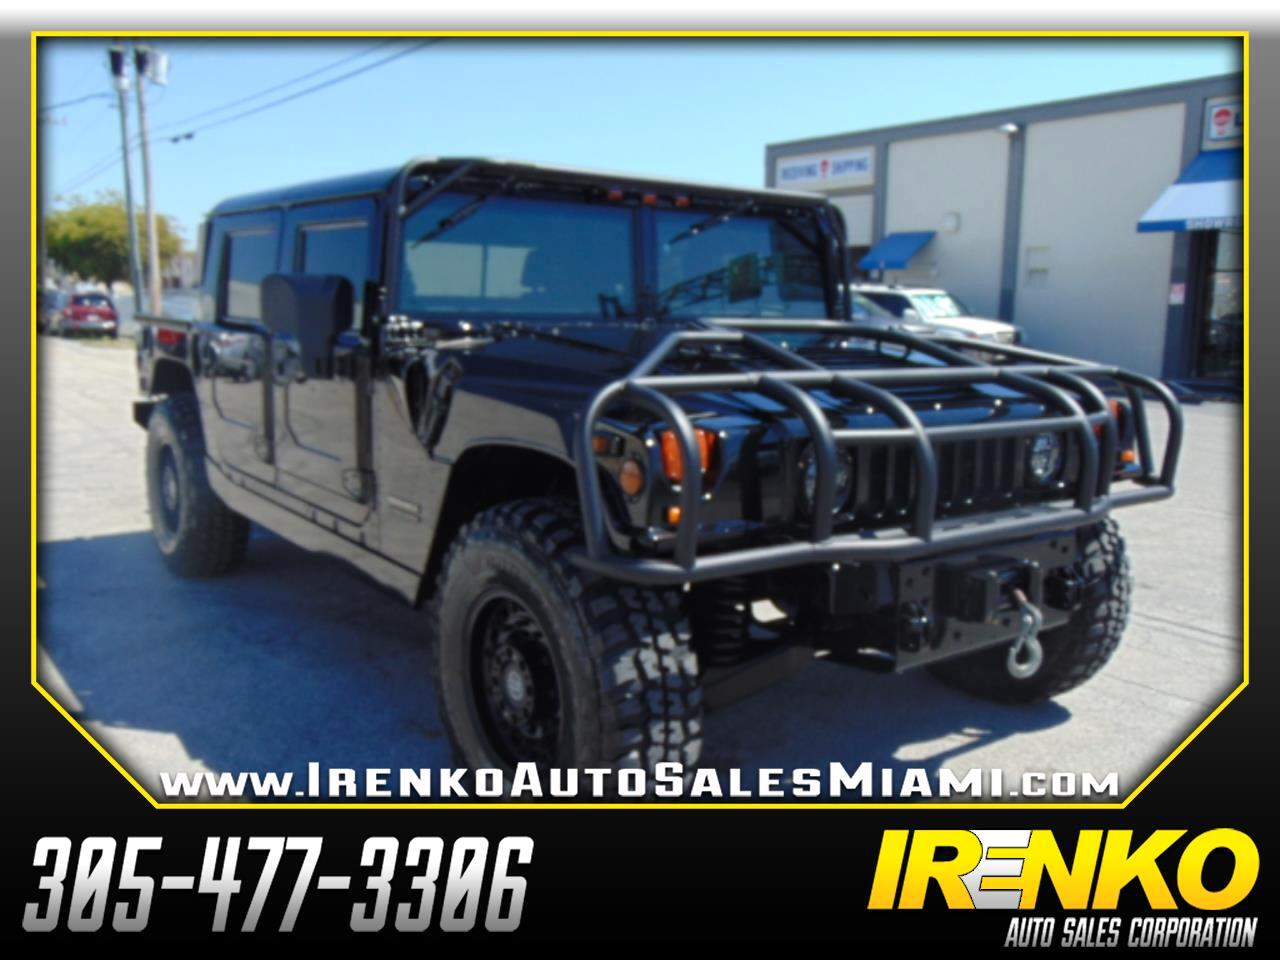 2000 AM General Hummer 4-Passenger Hard Top